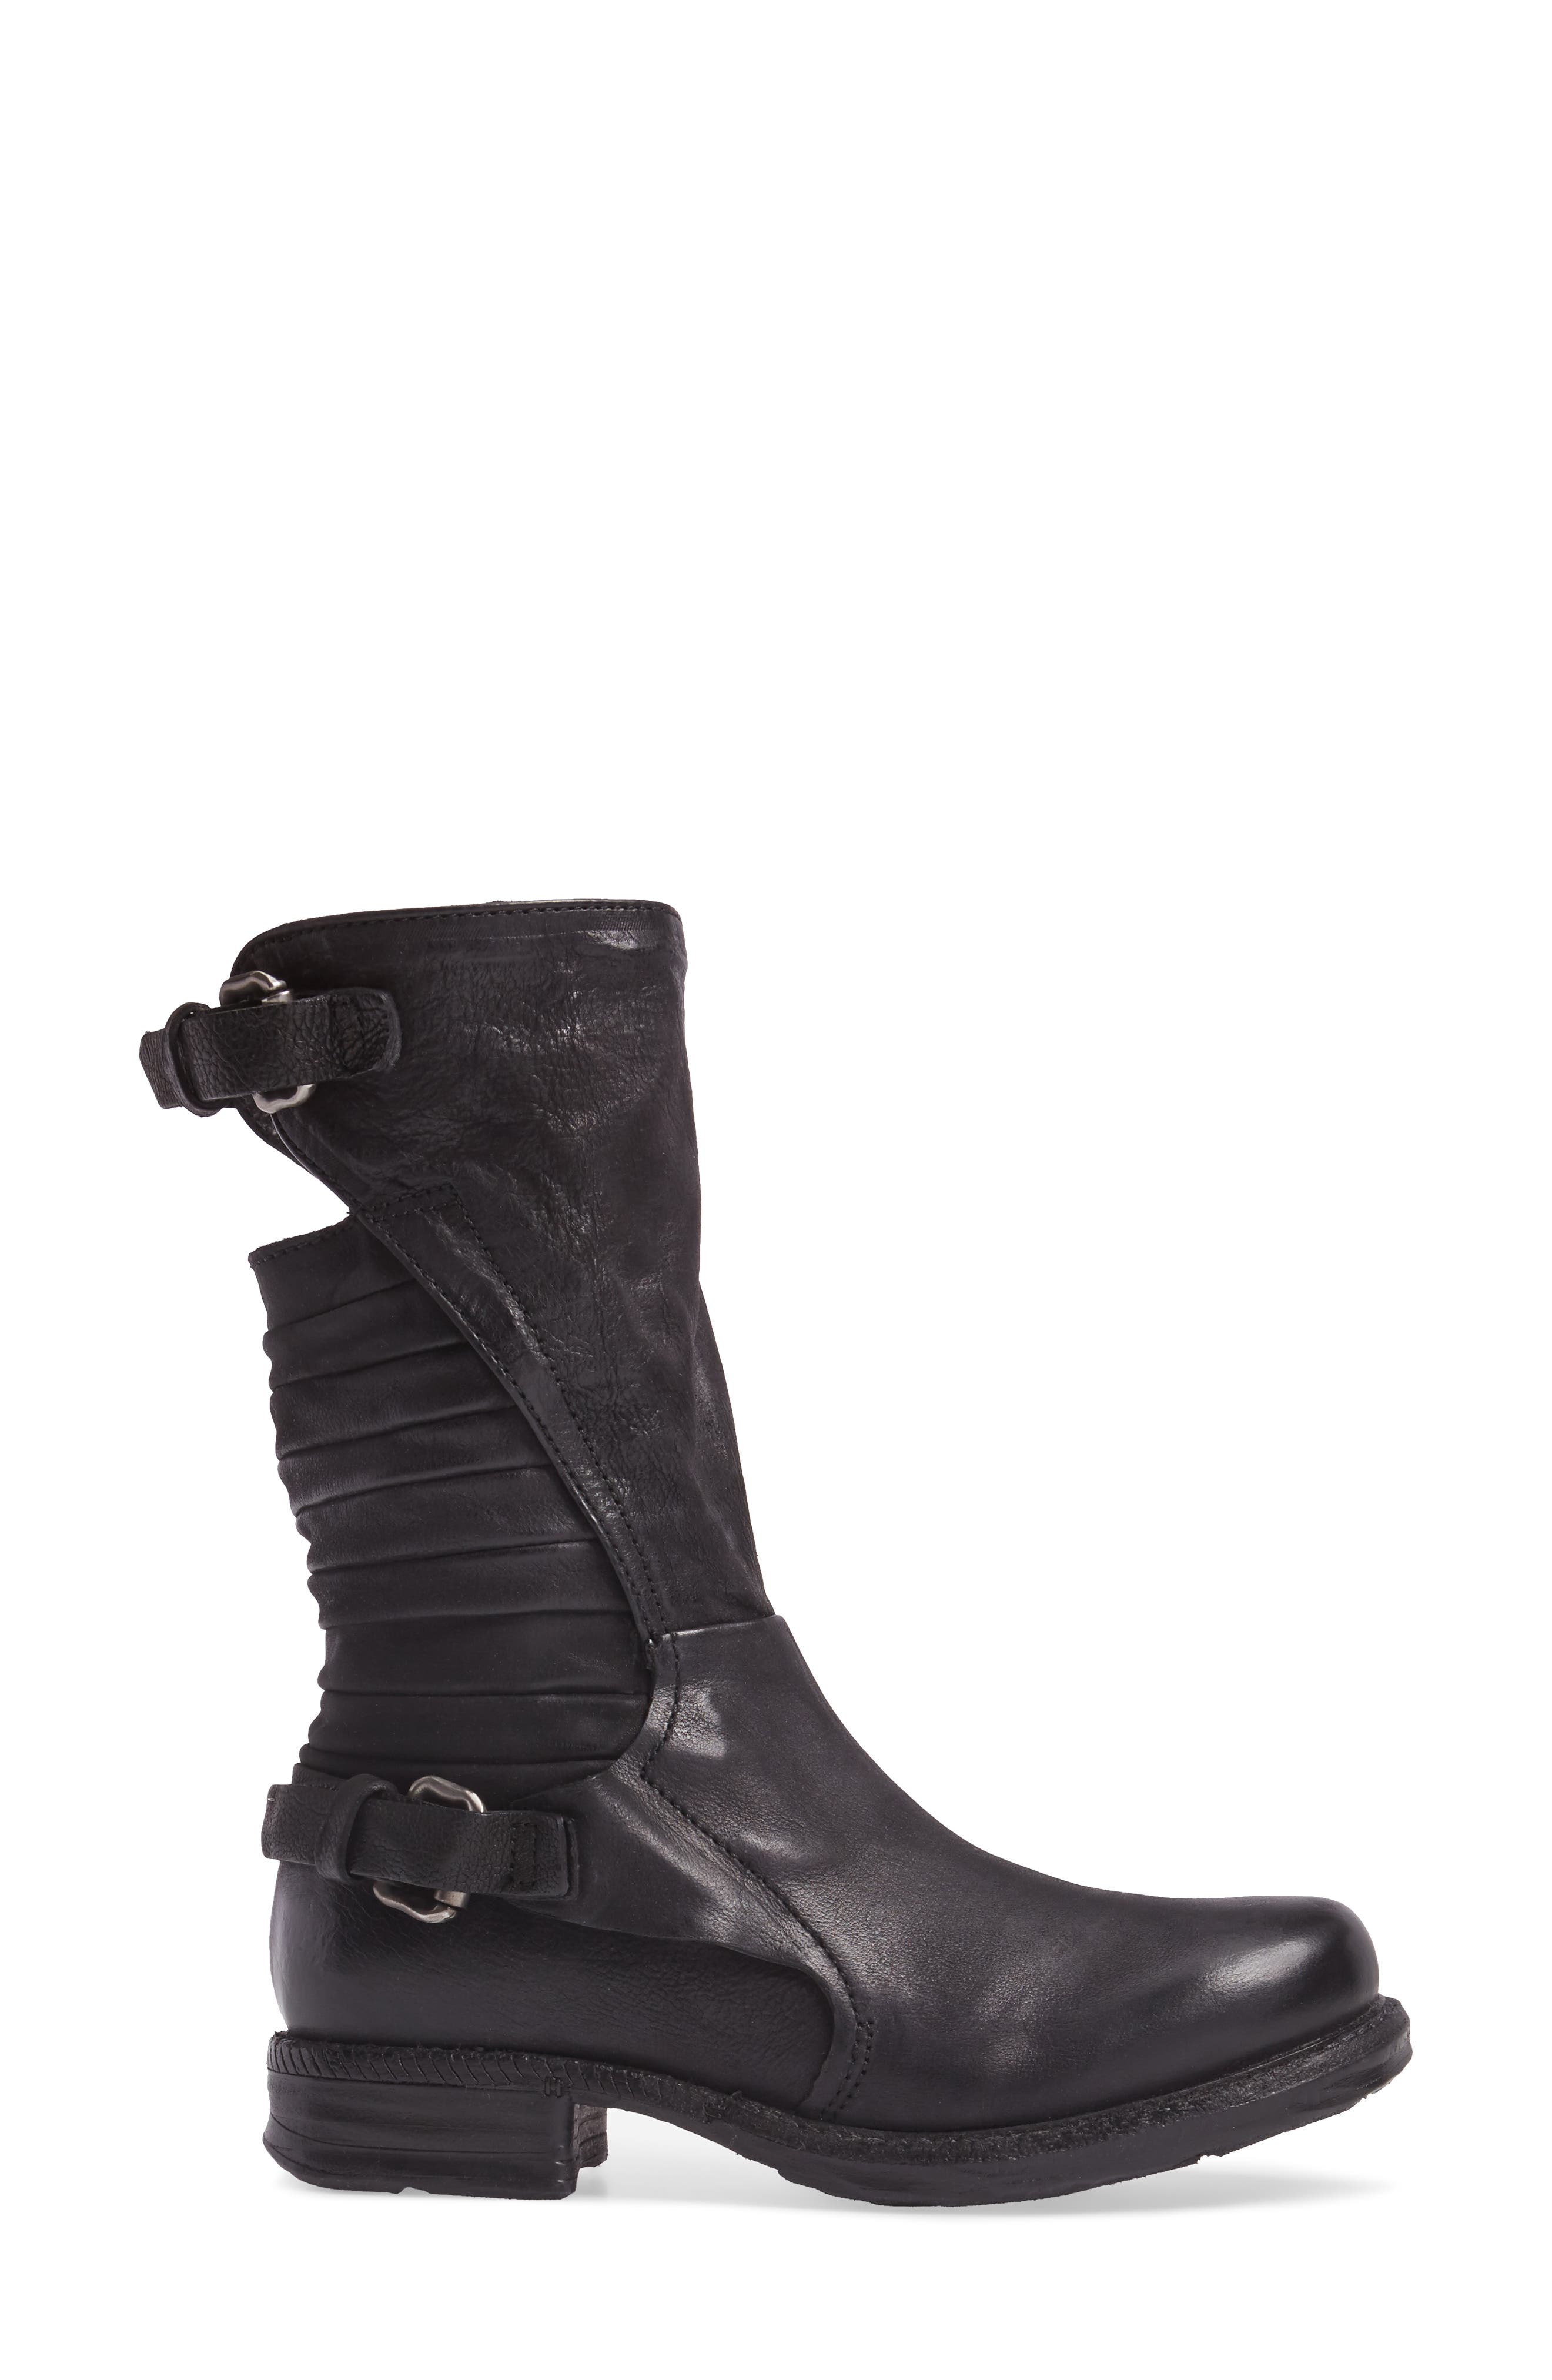 A.S. 98 Serge Boot,                             Alternate thumbnail 3, color,                             001